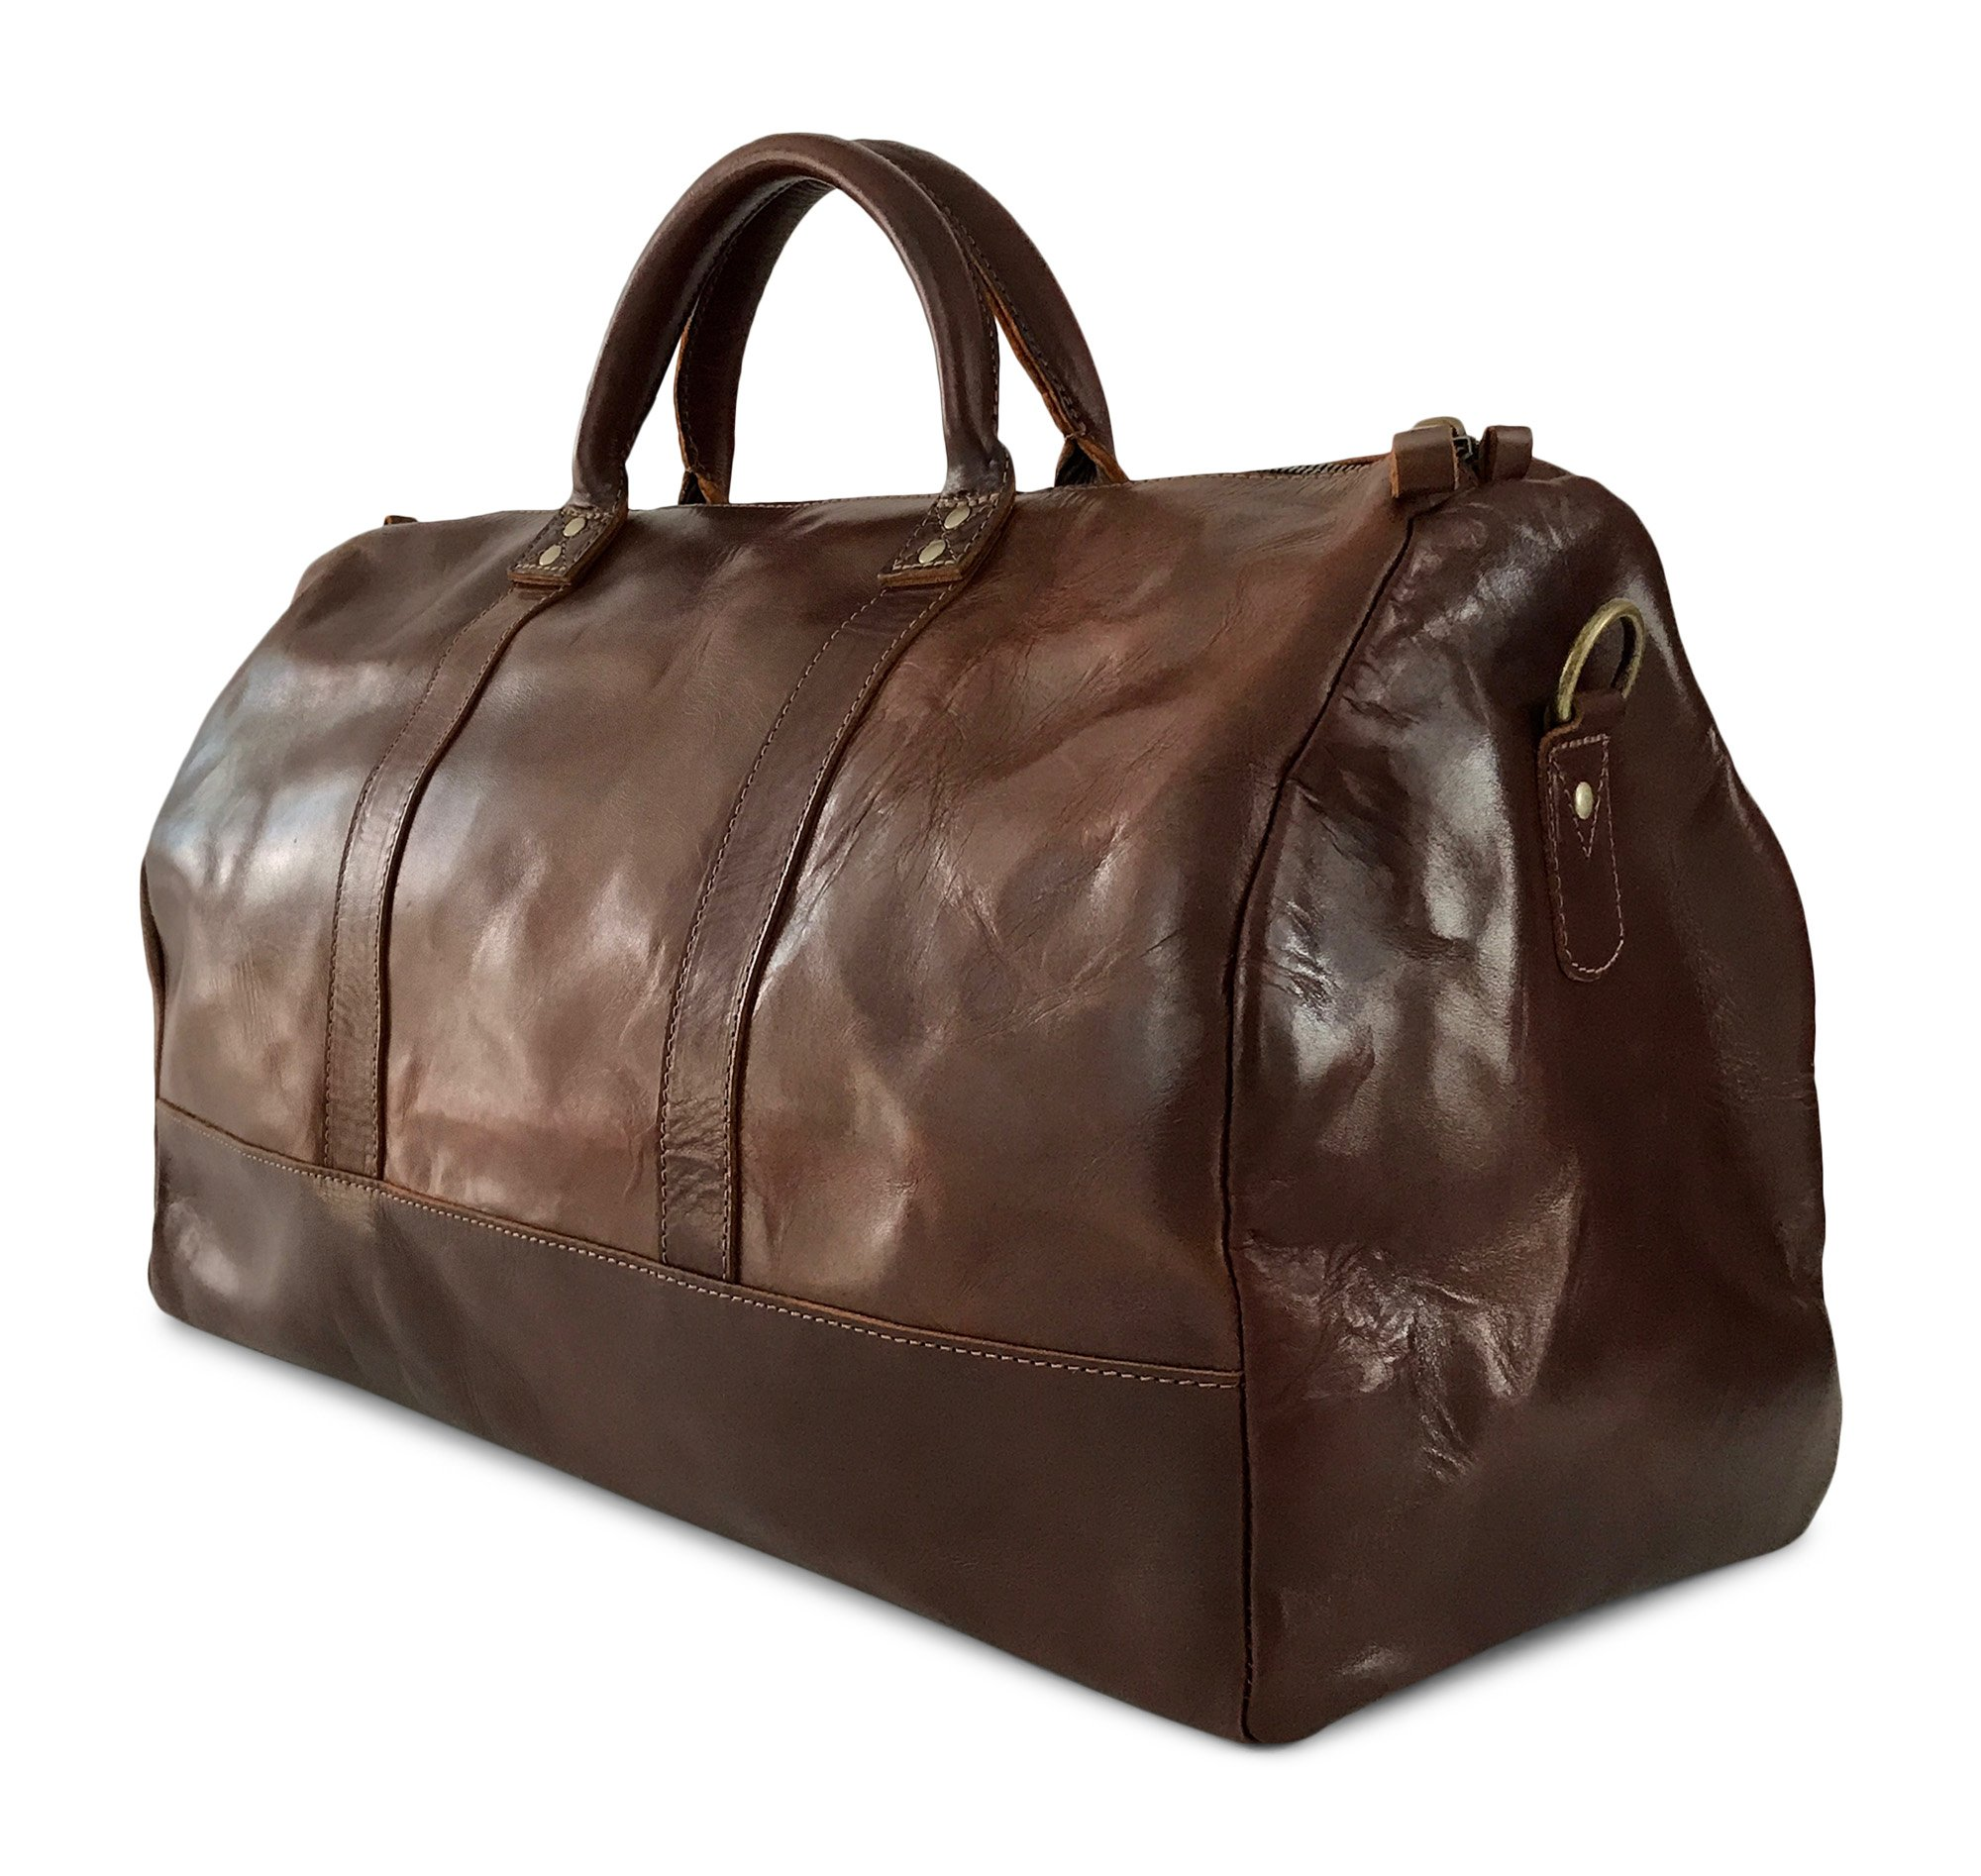 Vintage Full Grain Leather Duffle Bag & Weekend Carryall by Jackson Wayne (Vintage Brown) by Jackson Wayne (Image #4)